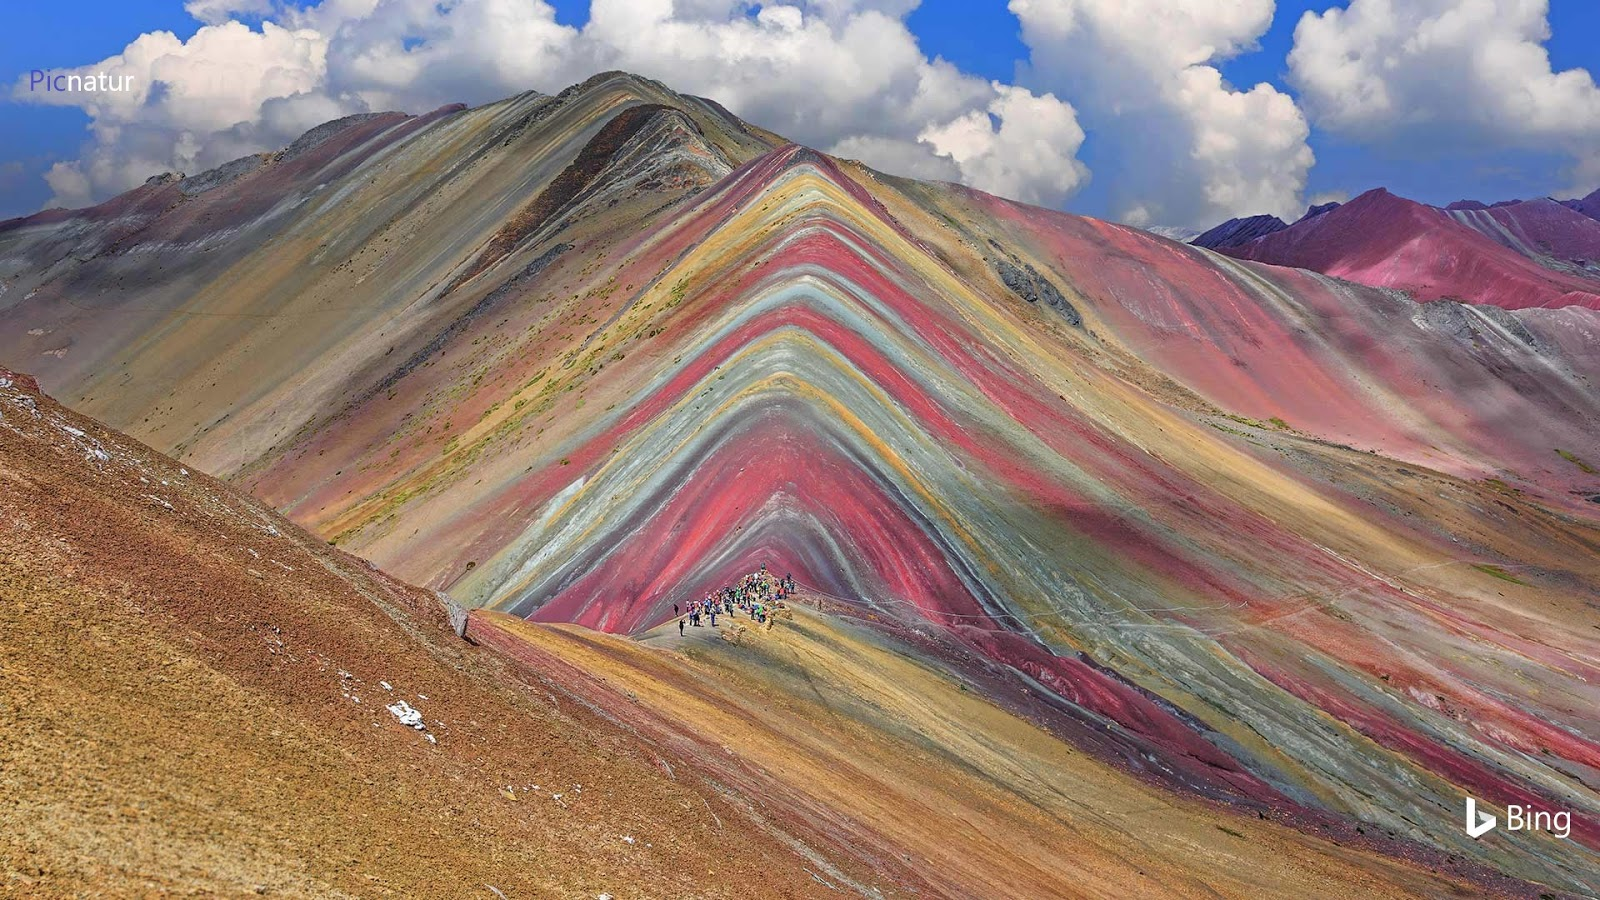 Vinicunca Mountain in the Cusco Region of Peru © sorincolac/Getty Images